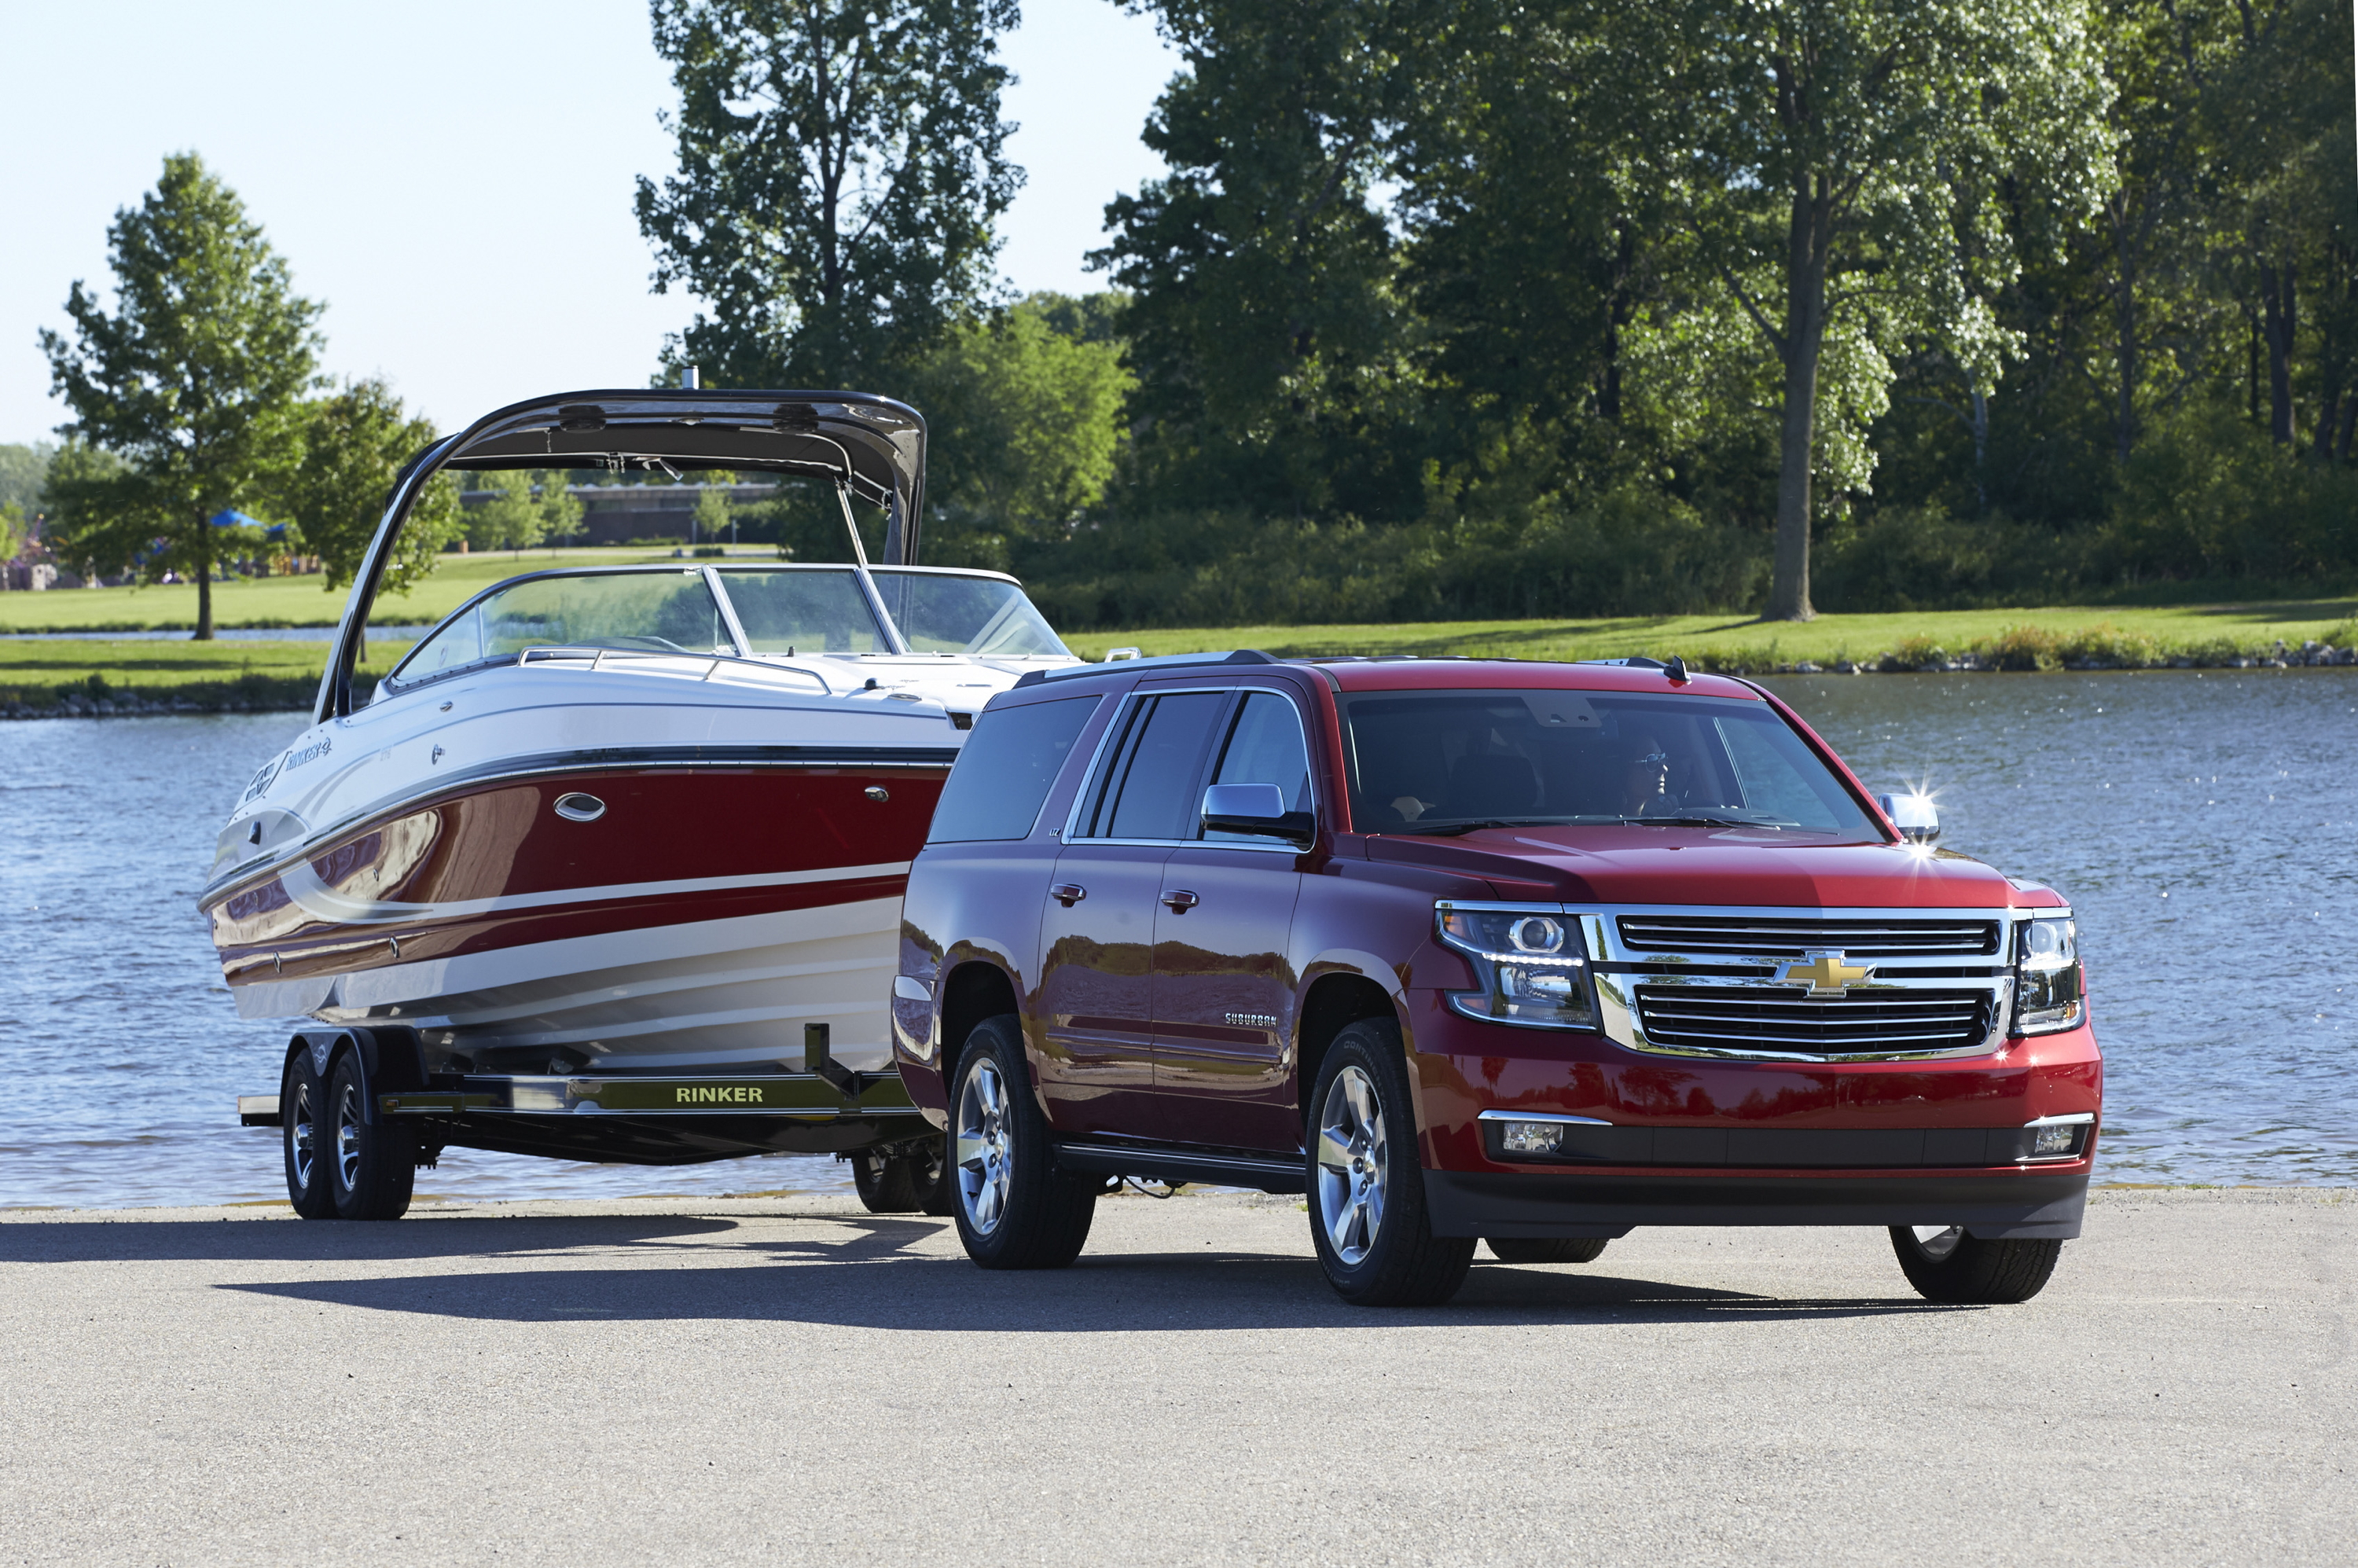 Suburban Offers Every Comfort for Vacation Cruising